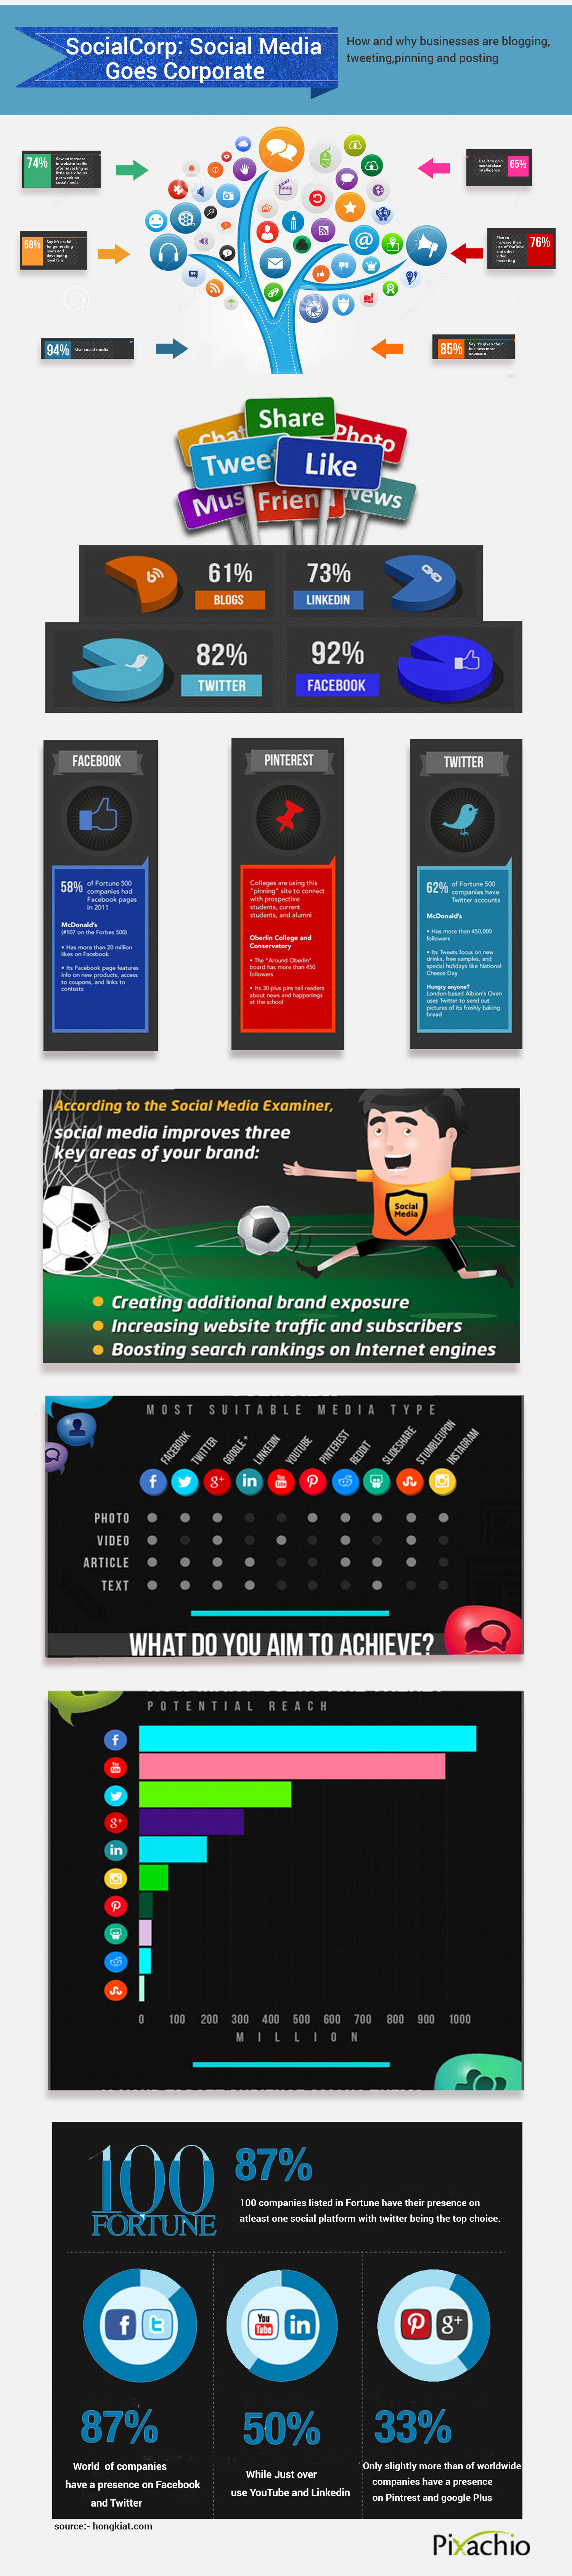 Social Media Goes Corporate Infographic